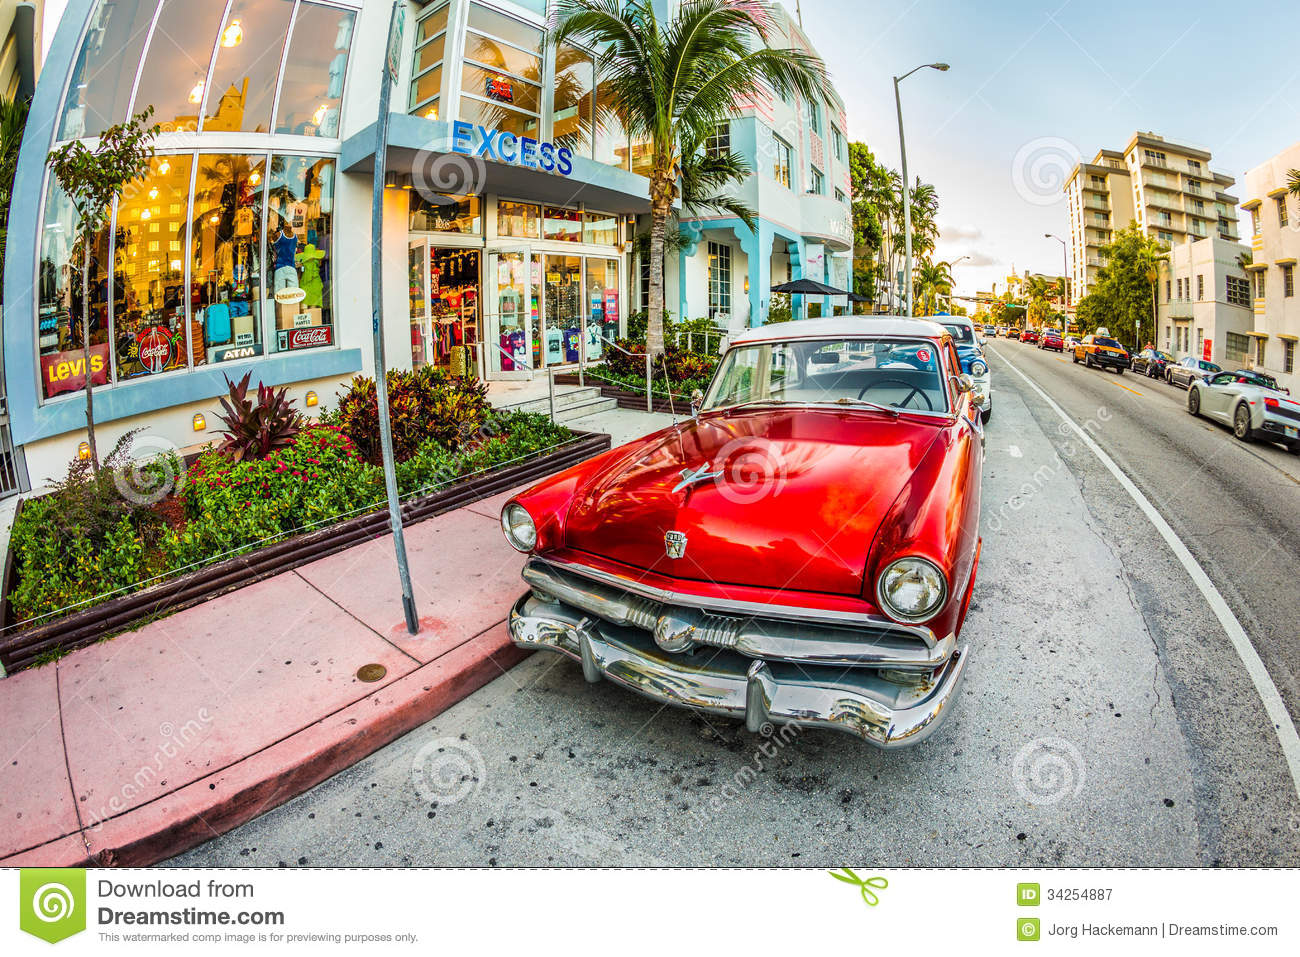 Miami Used Chevrolet >> Vintage Ford Car Parks In The Art Deco District In Miami ...